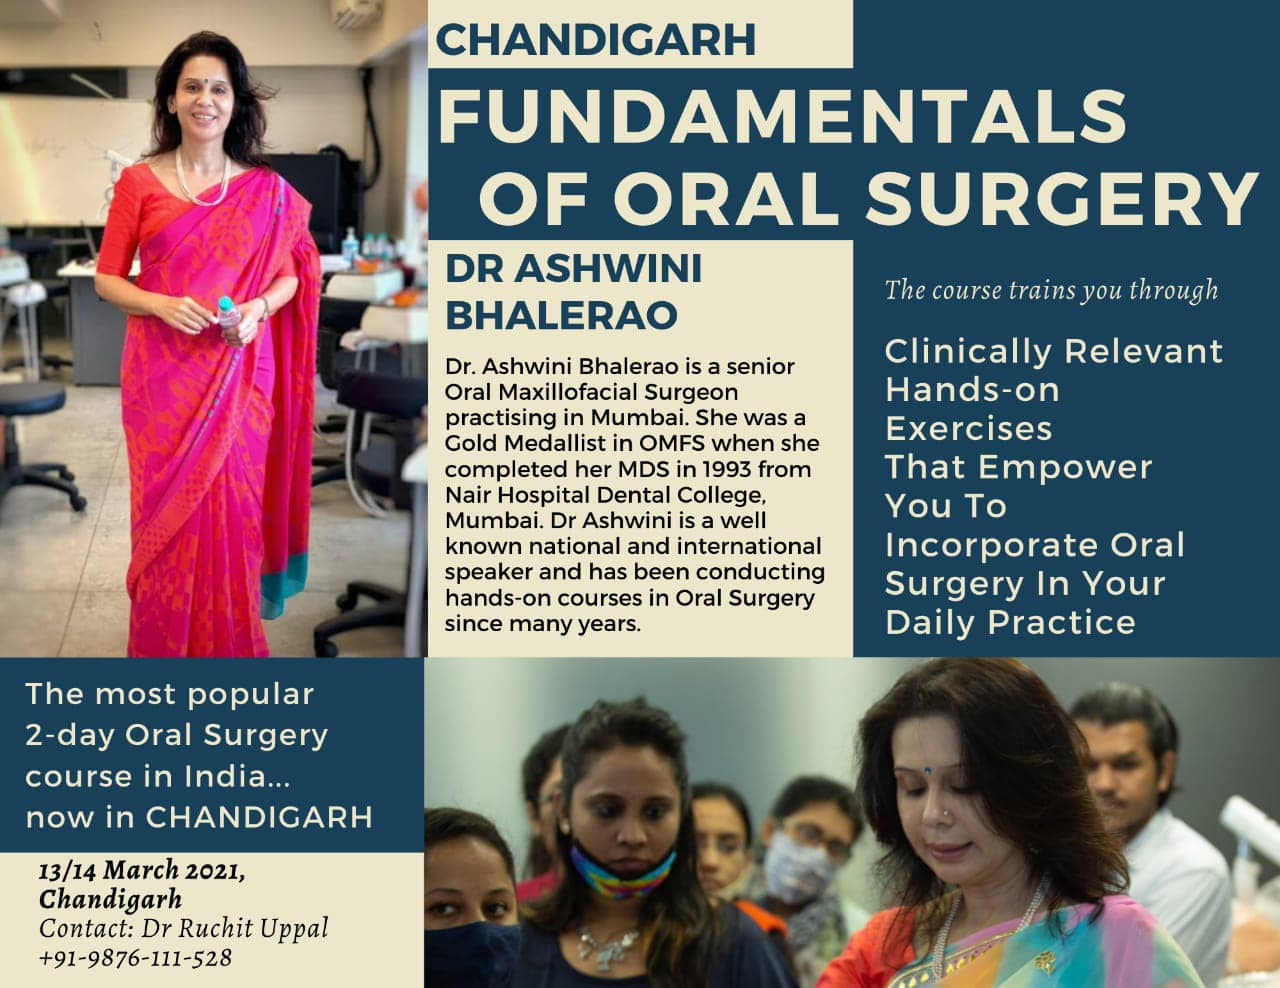 Fundamental of Oral Surgery